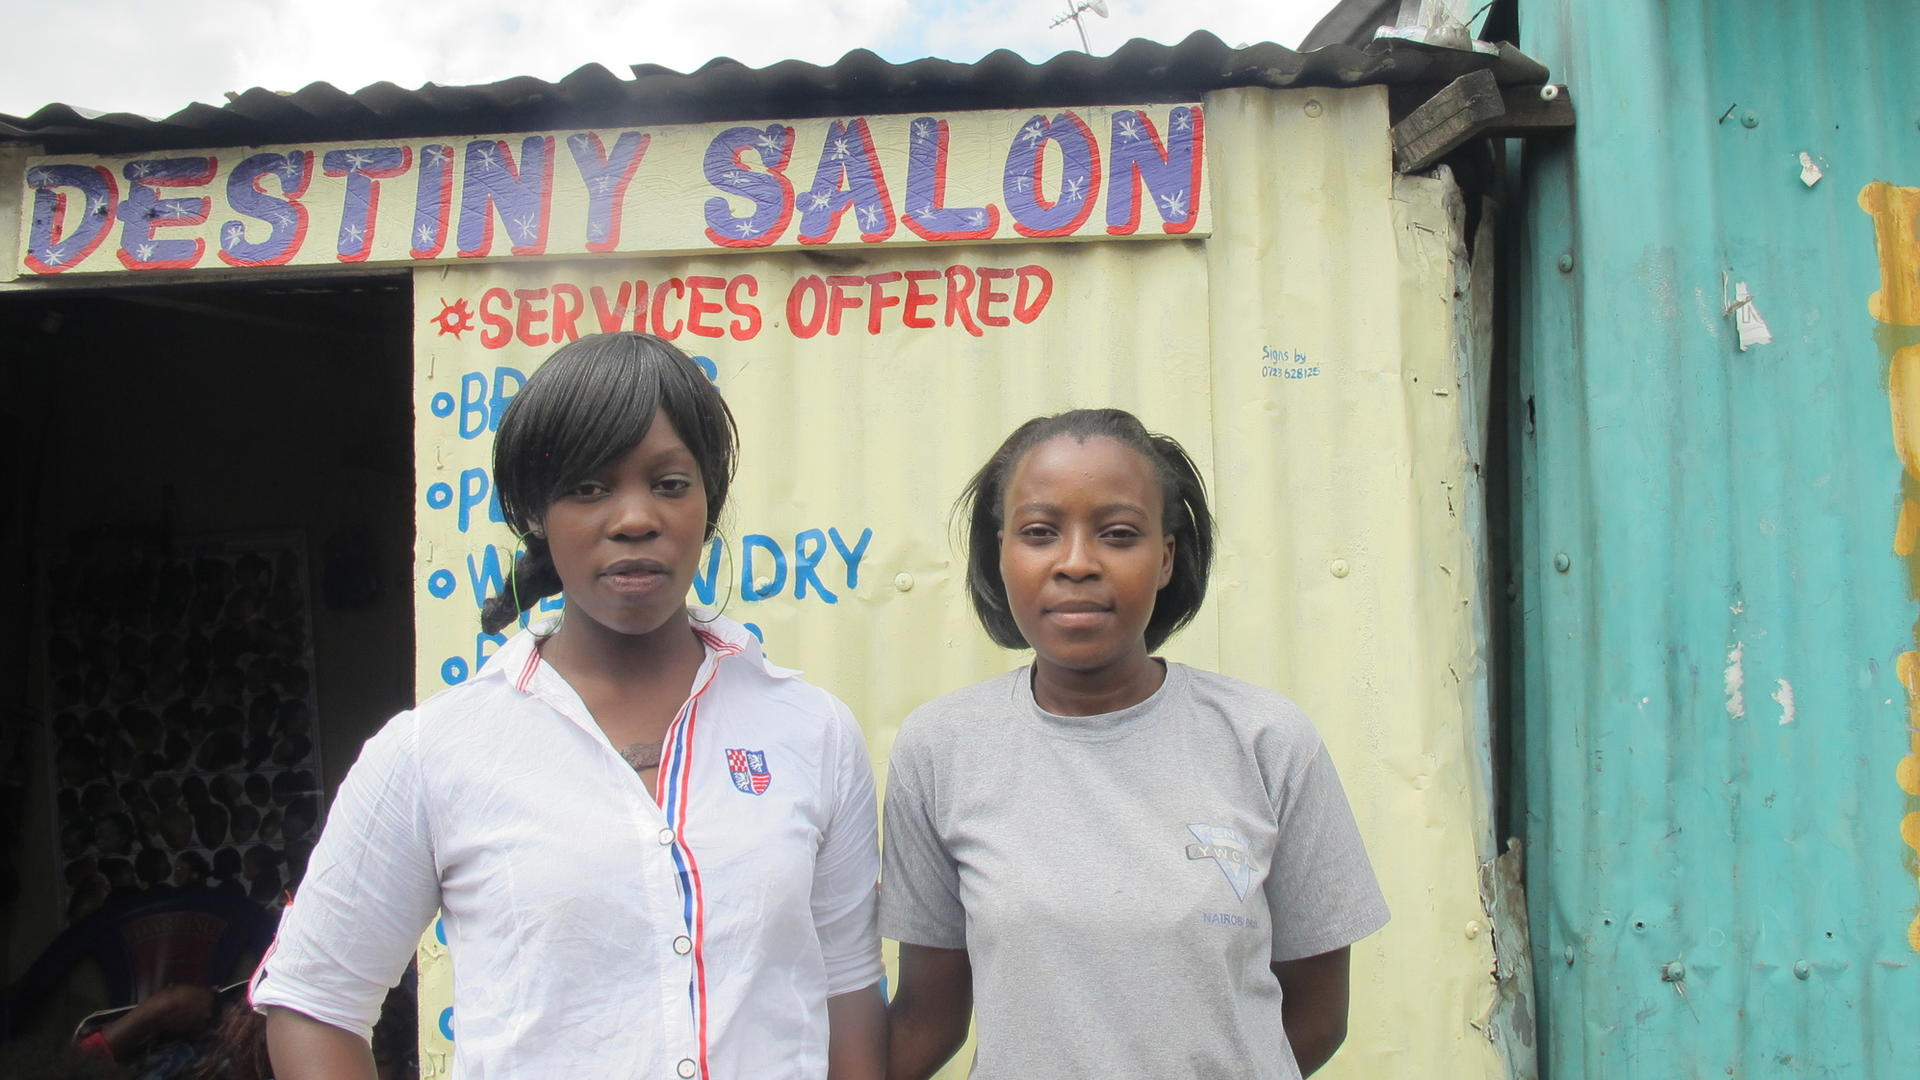 Susan and partner Mariam outside Nairobi salon